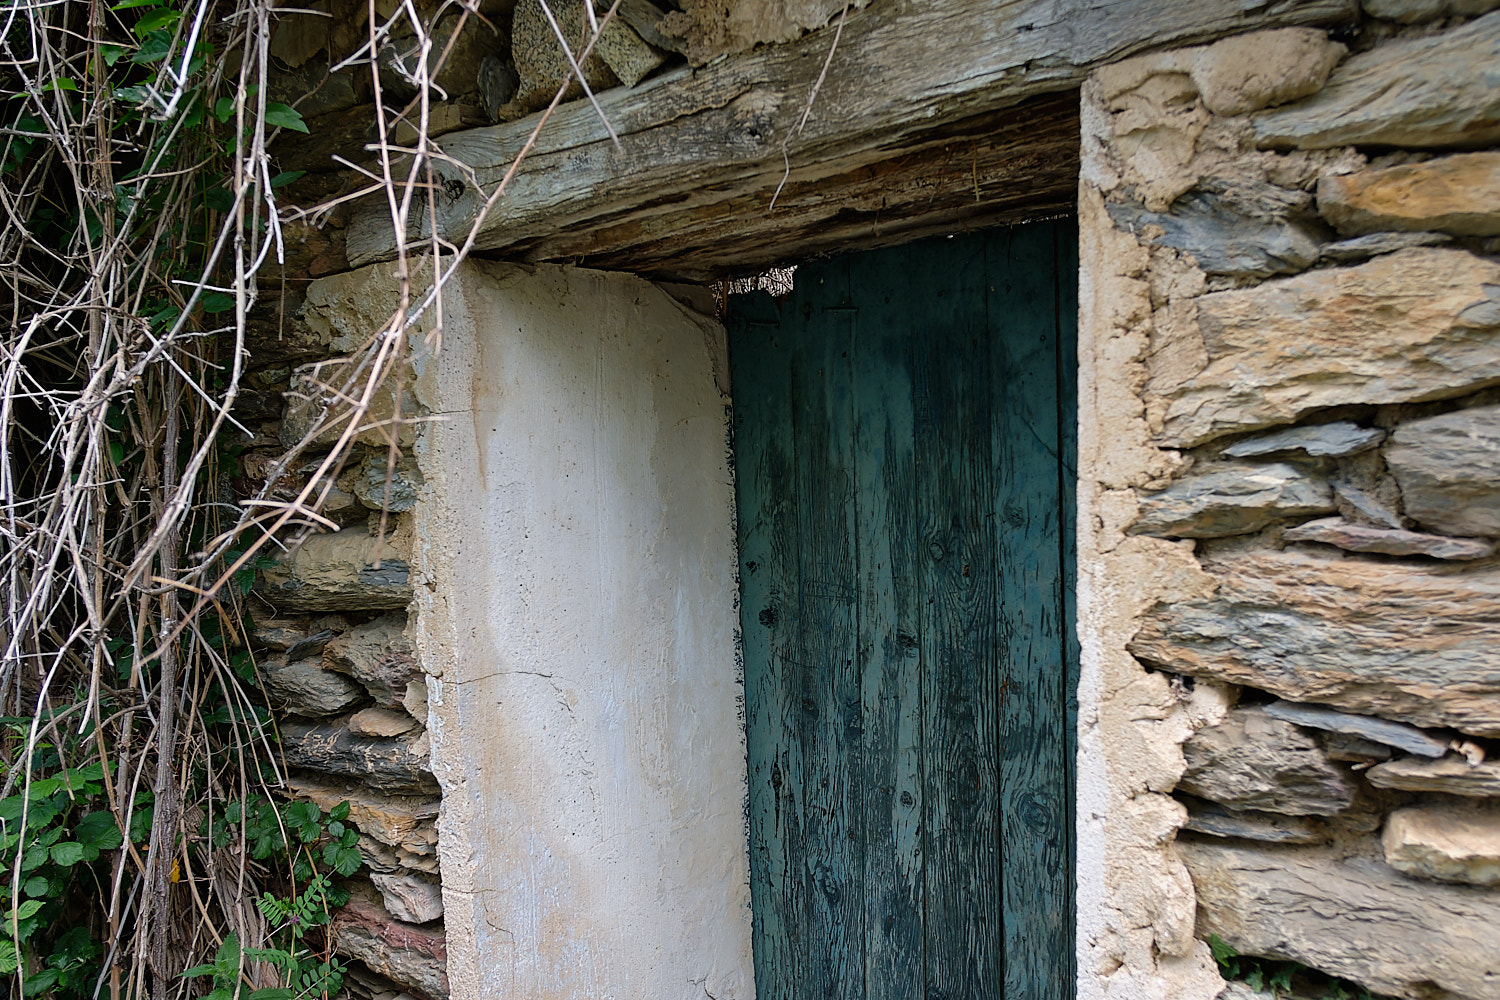 Abandoned house entrance at Saraís (ghost town), Vall de Boí, Pyrenees, Spain